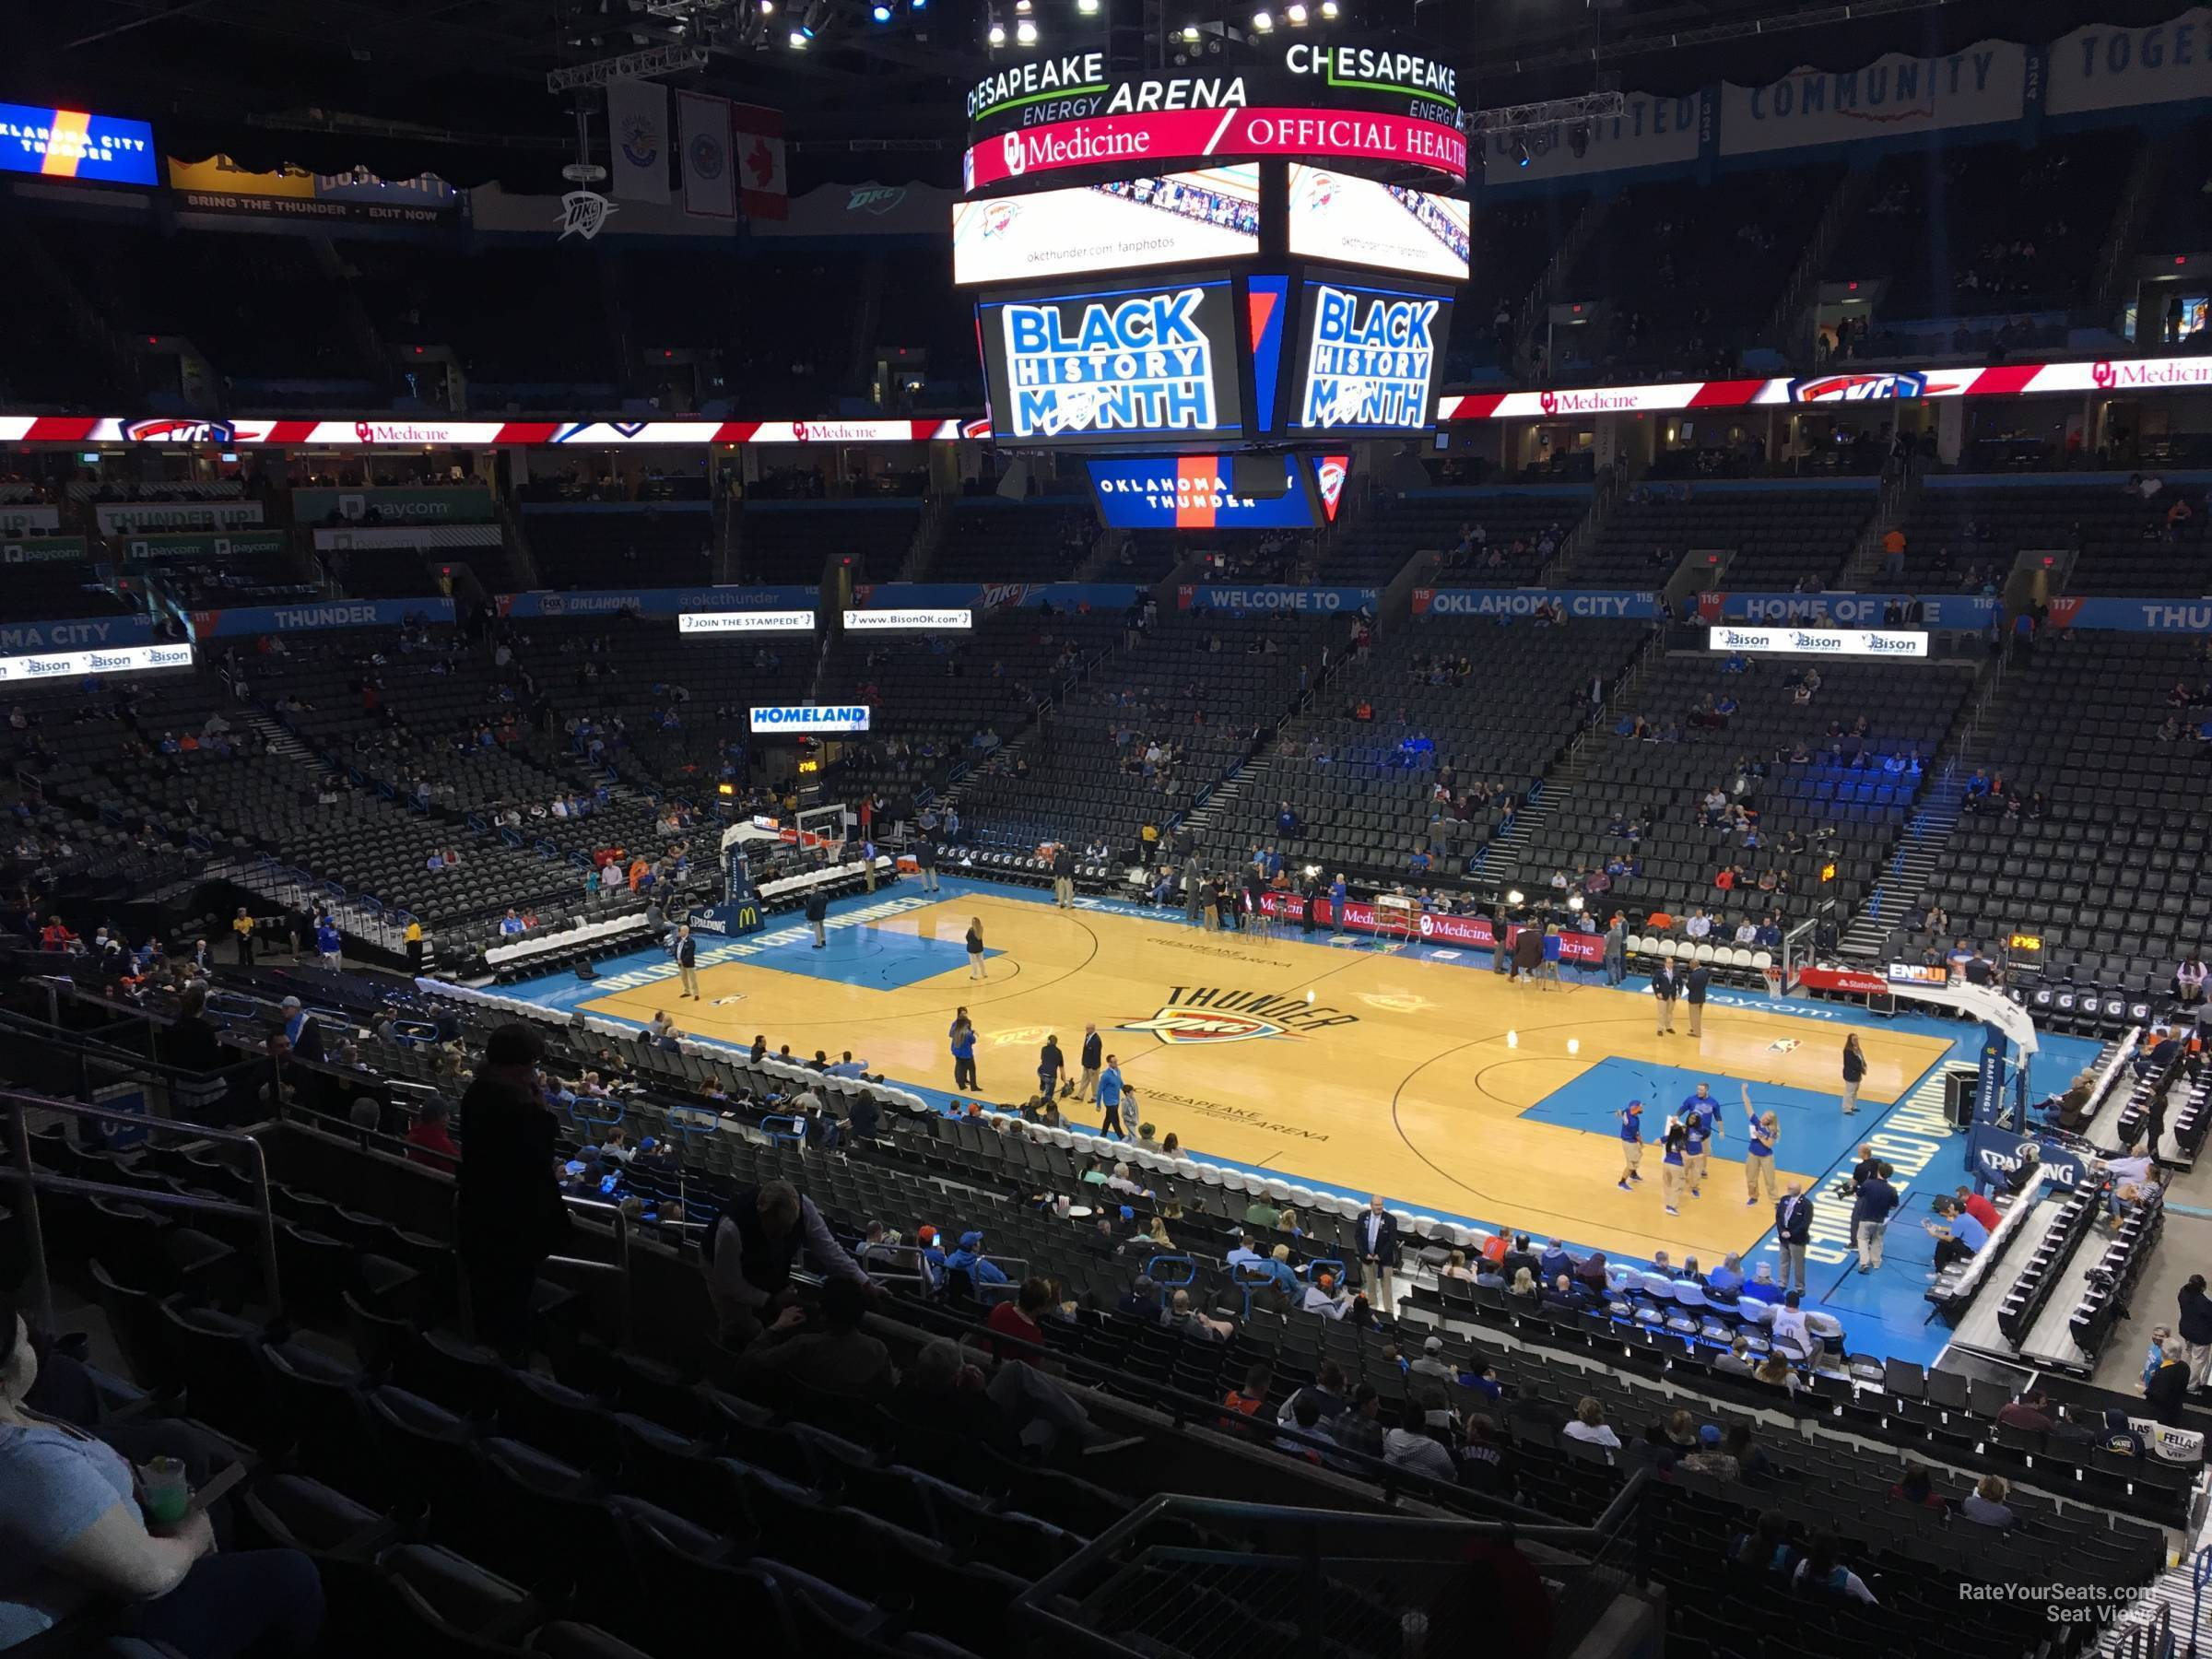 Seat View for Chesapeake Energy Arena Section 206, Row H